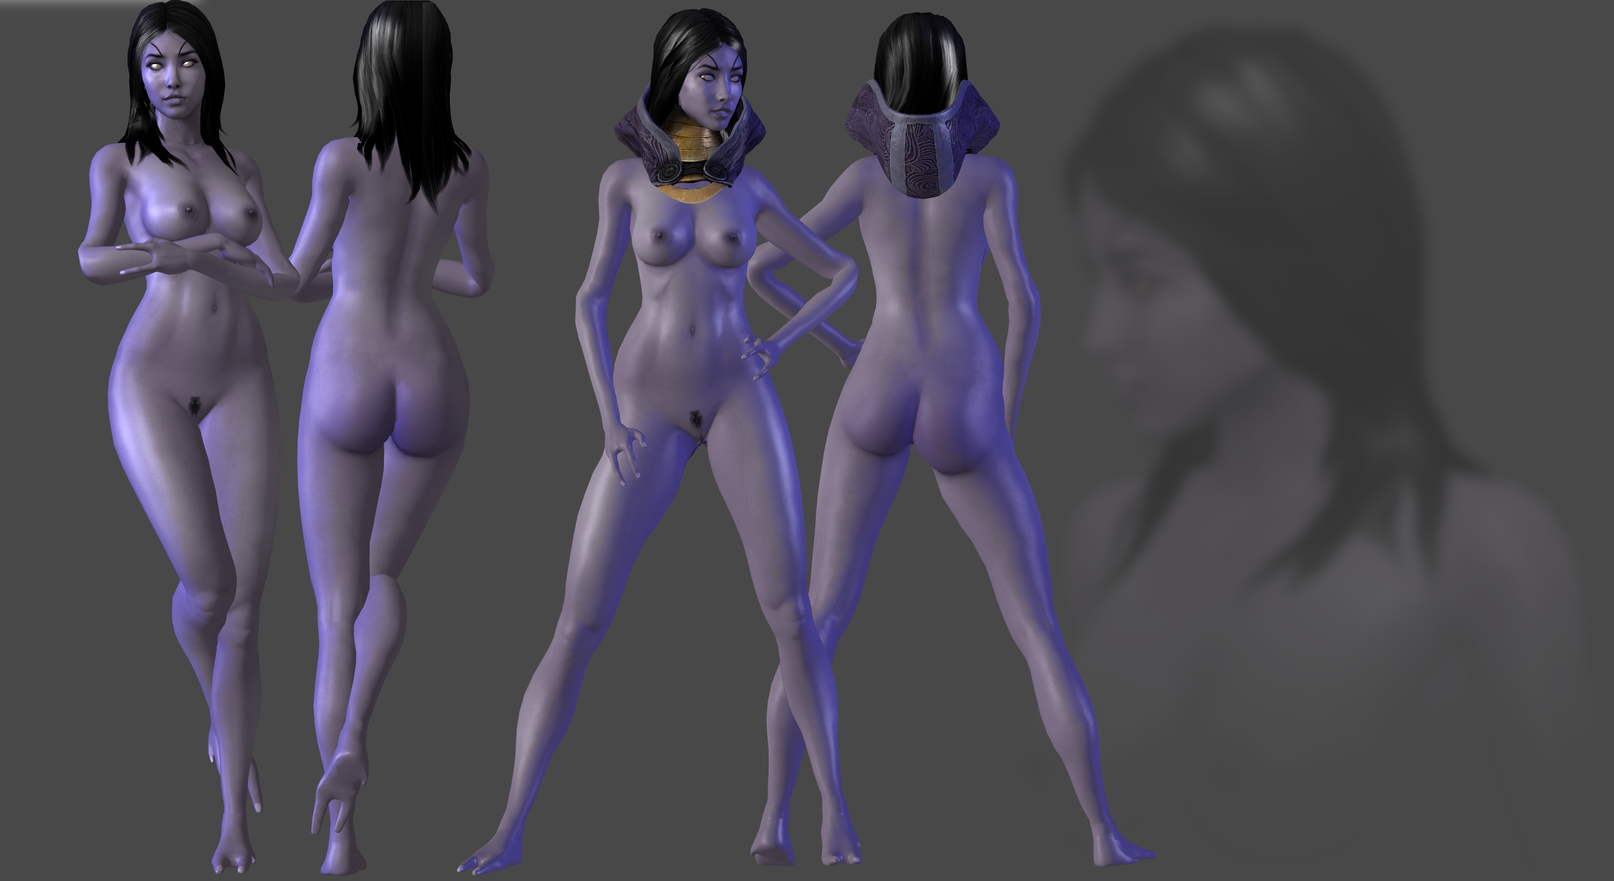 Healthy! Mass effect mod nude